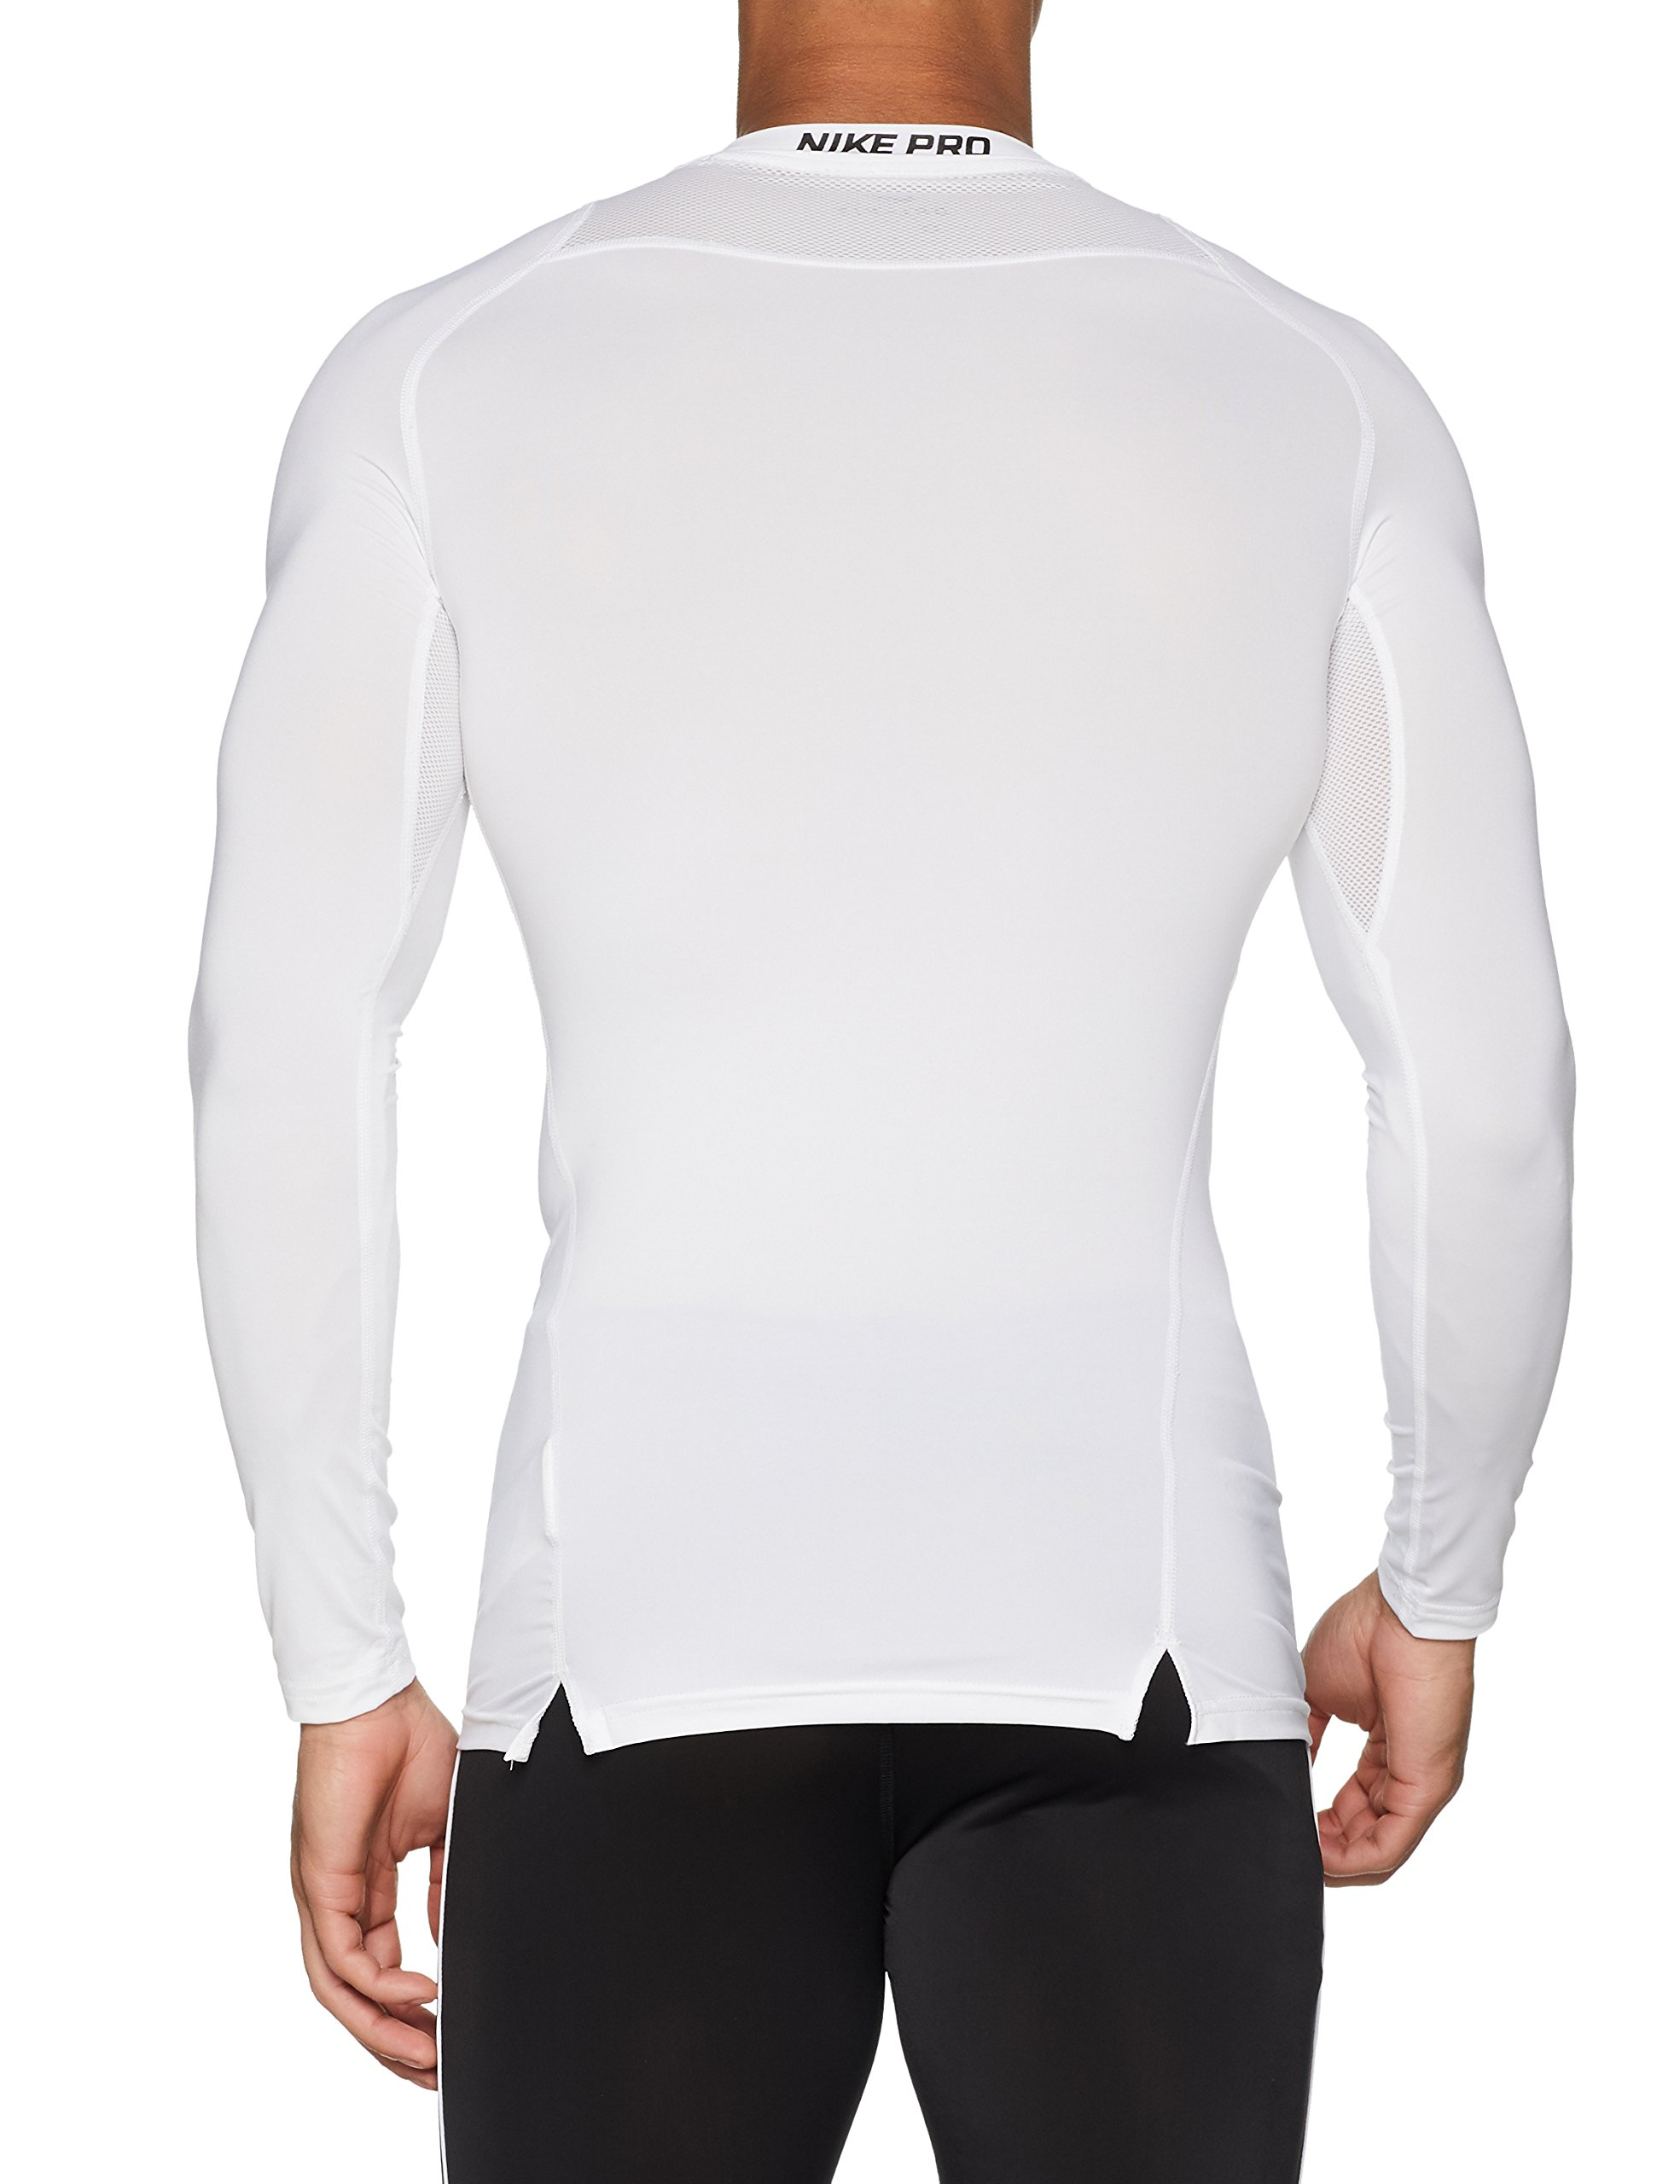 NIKE Pro Longsleeve Compression Shirt (White, L) by Nike (Image #2)